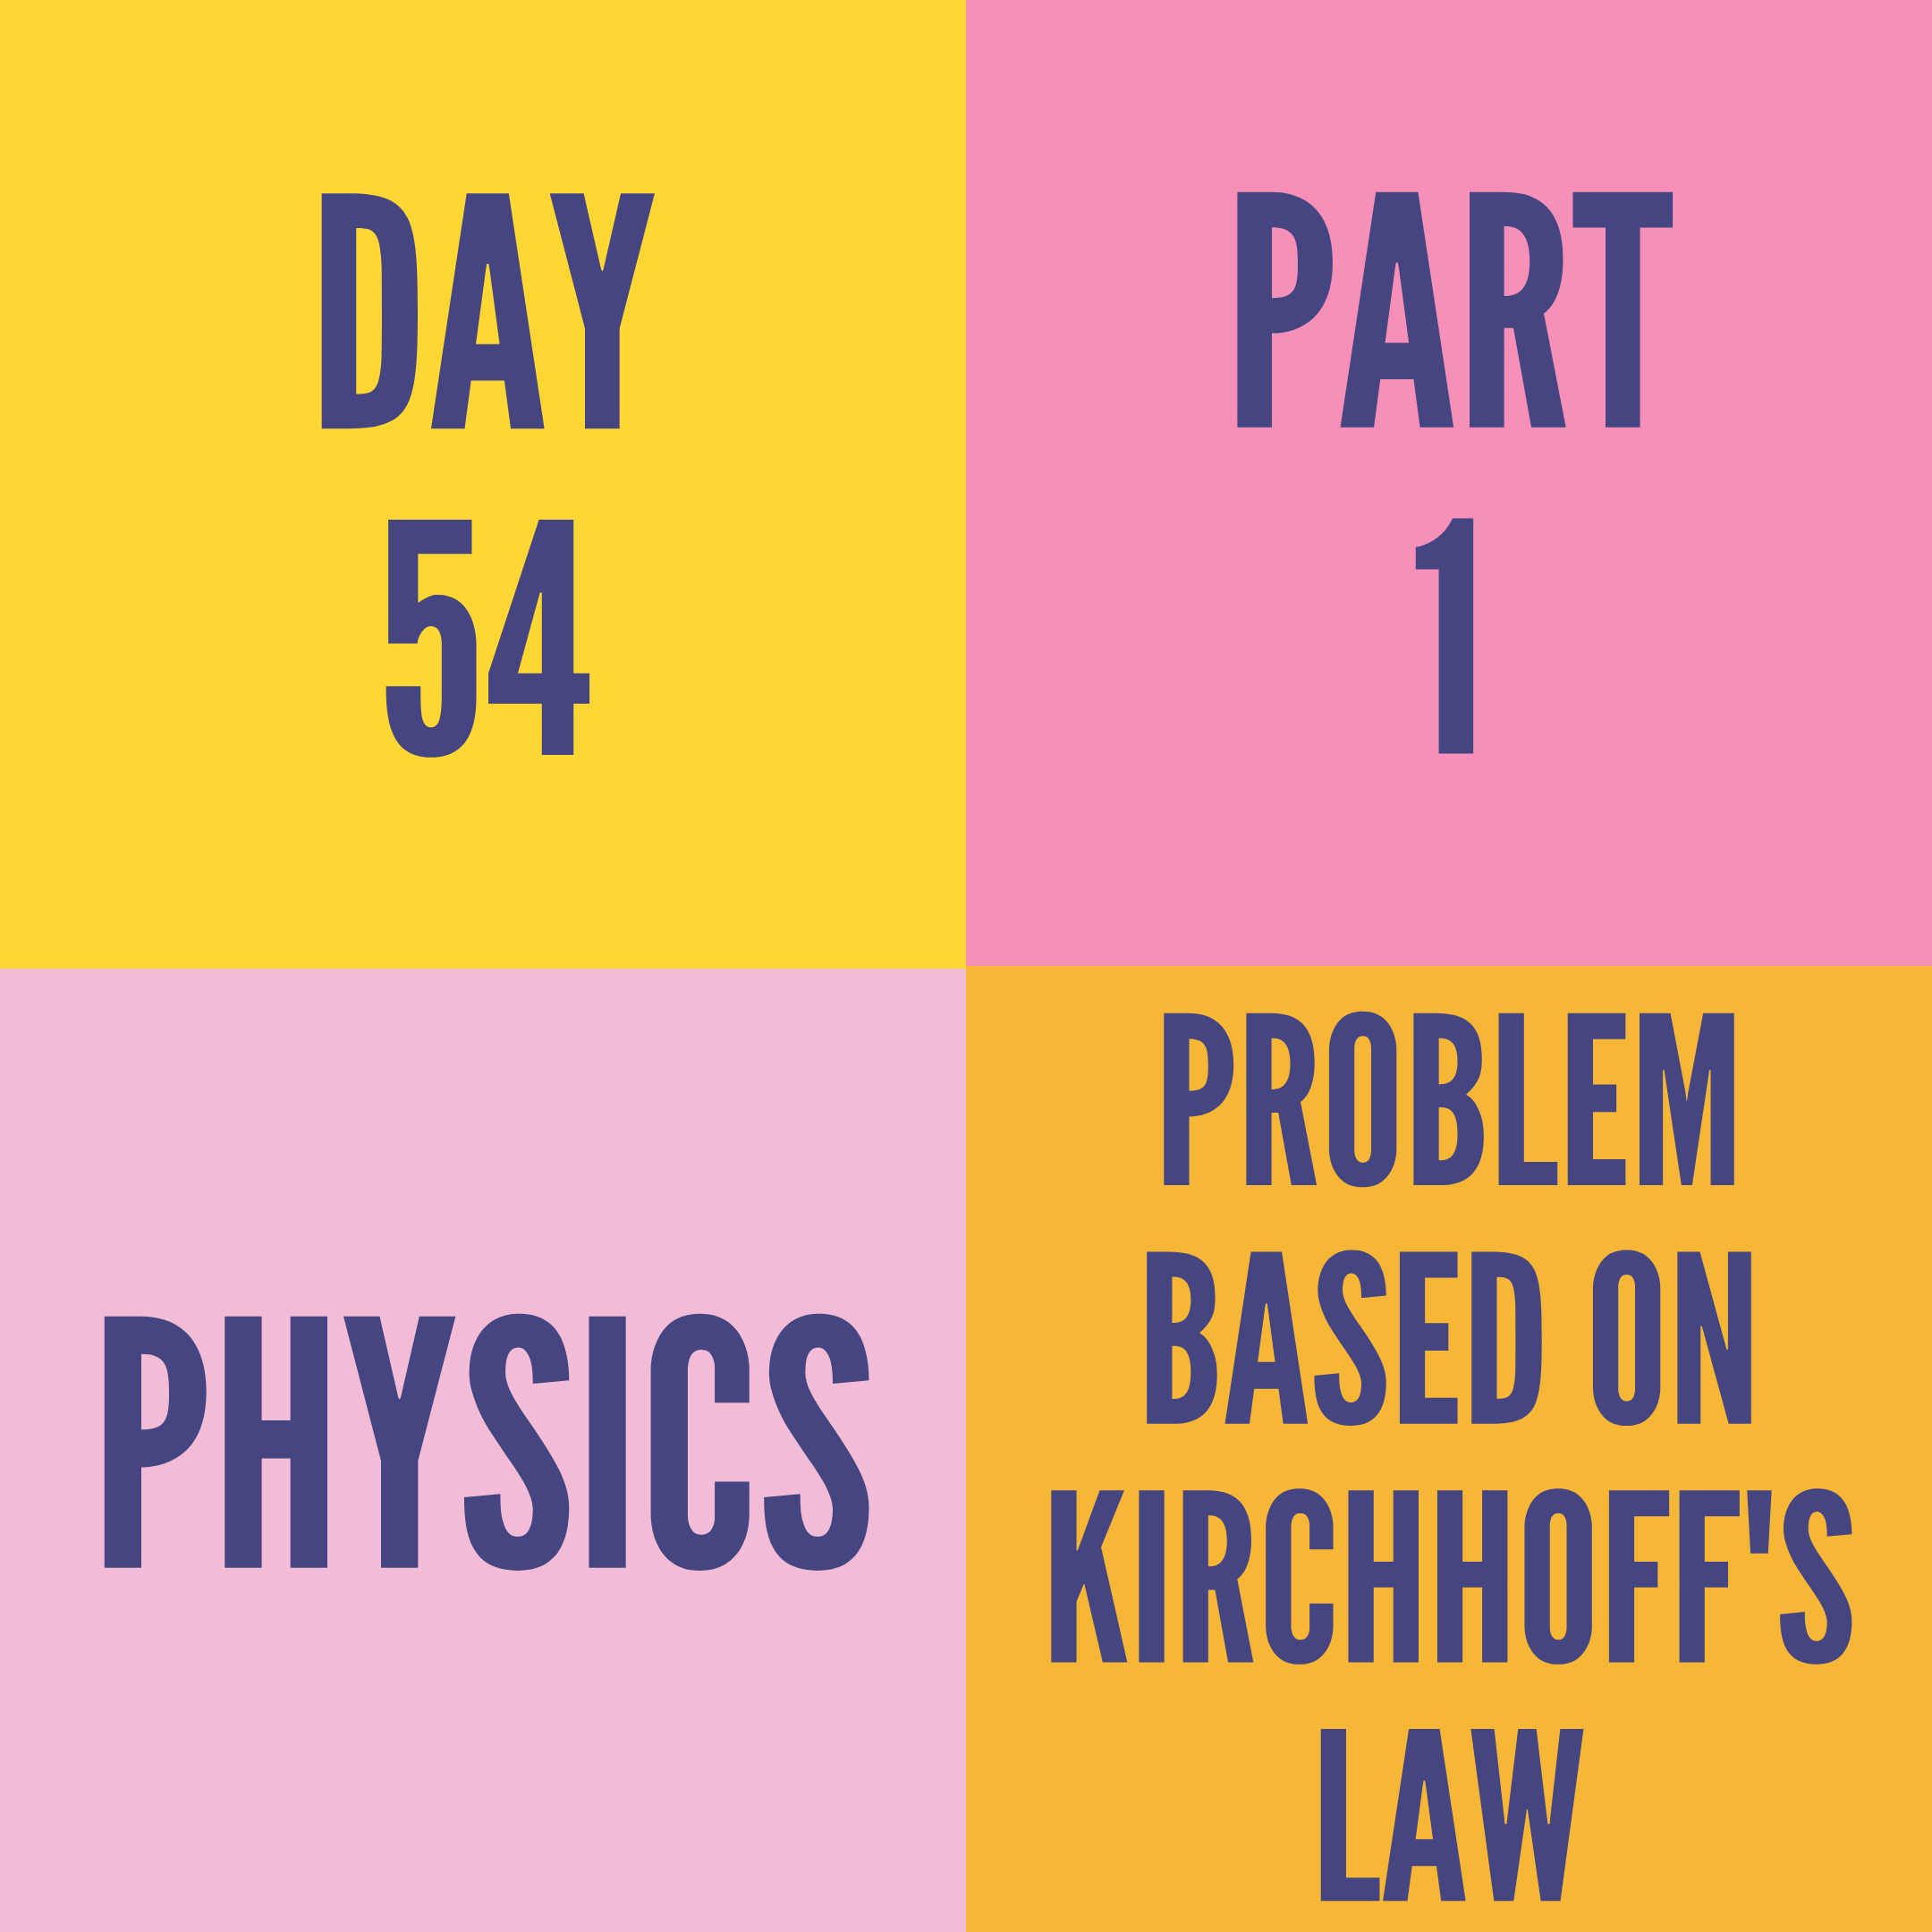 DAY-54 PART-1  PROBLEM BASED ON KIRCHHOFF'S LAW